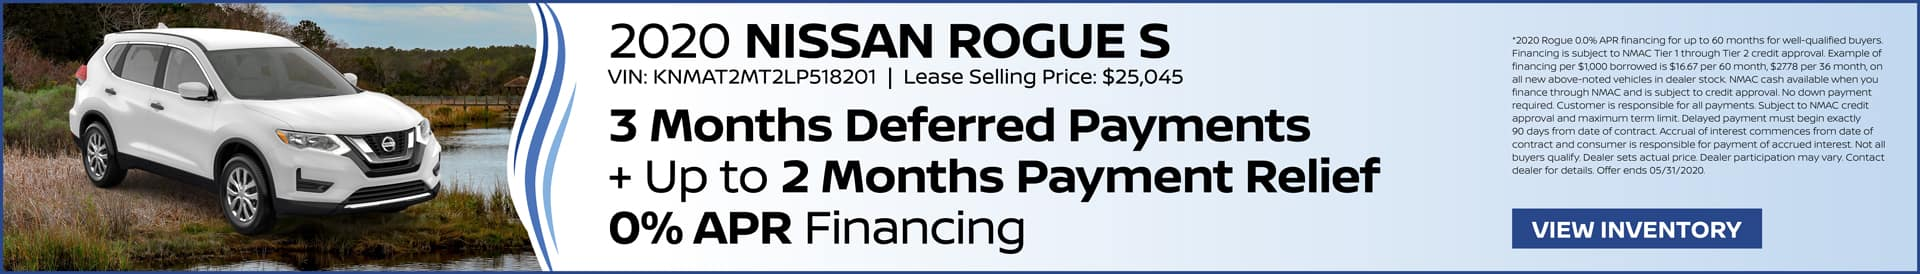 Coastal Saves Nissan Rogue 3 Months Deferred Payments + Up to 2 Months Payment Relief